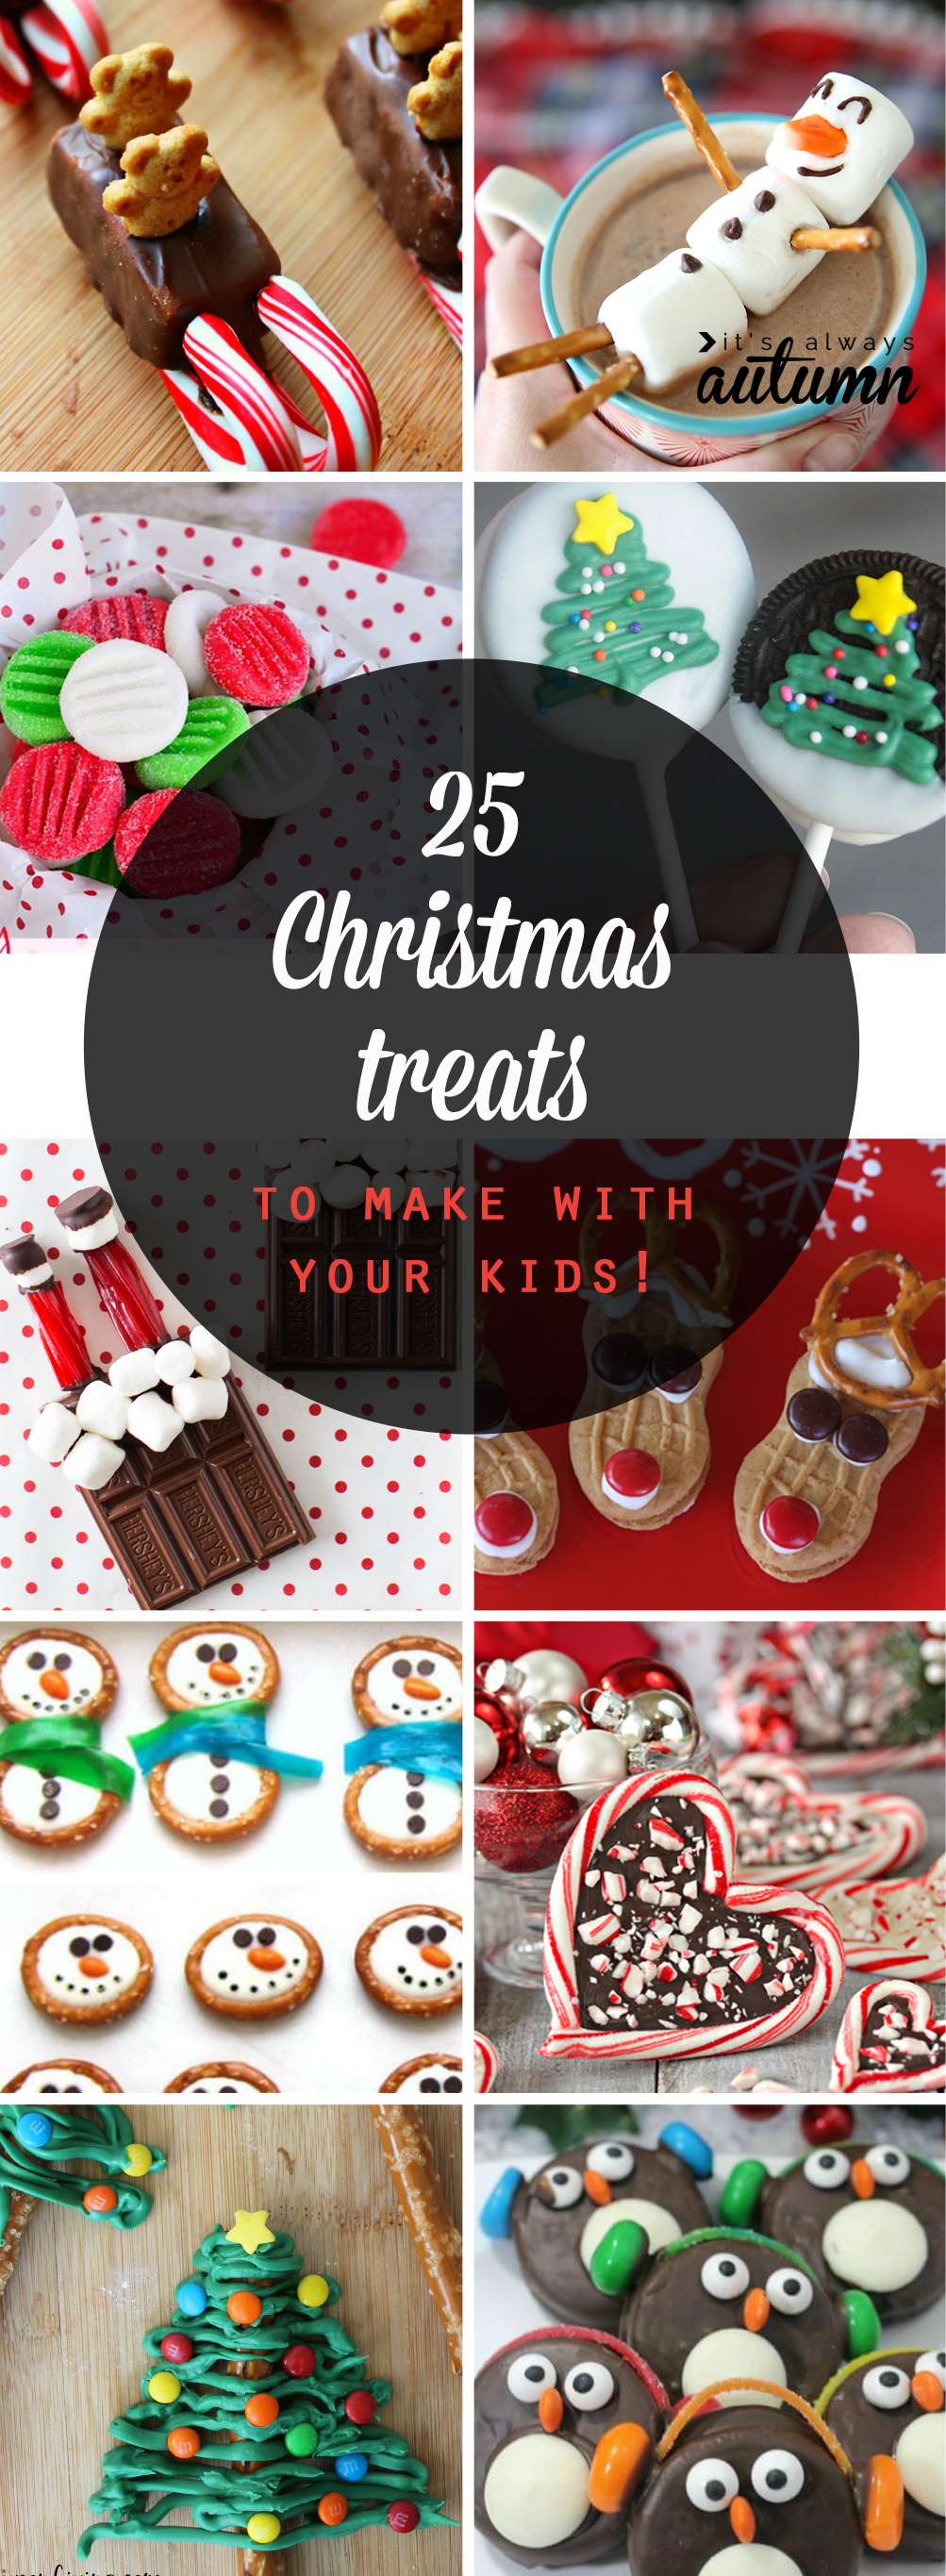 Easy Christmas Treats.25 Adorable Christmas Treats To Make With Your Kids It S